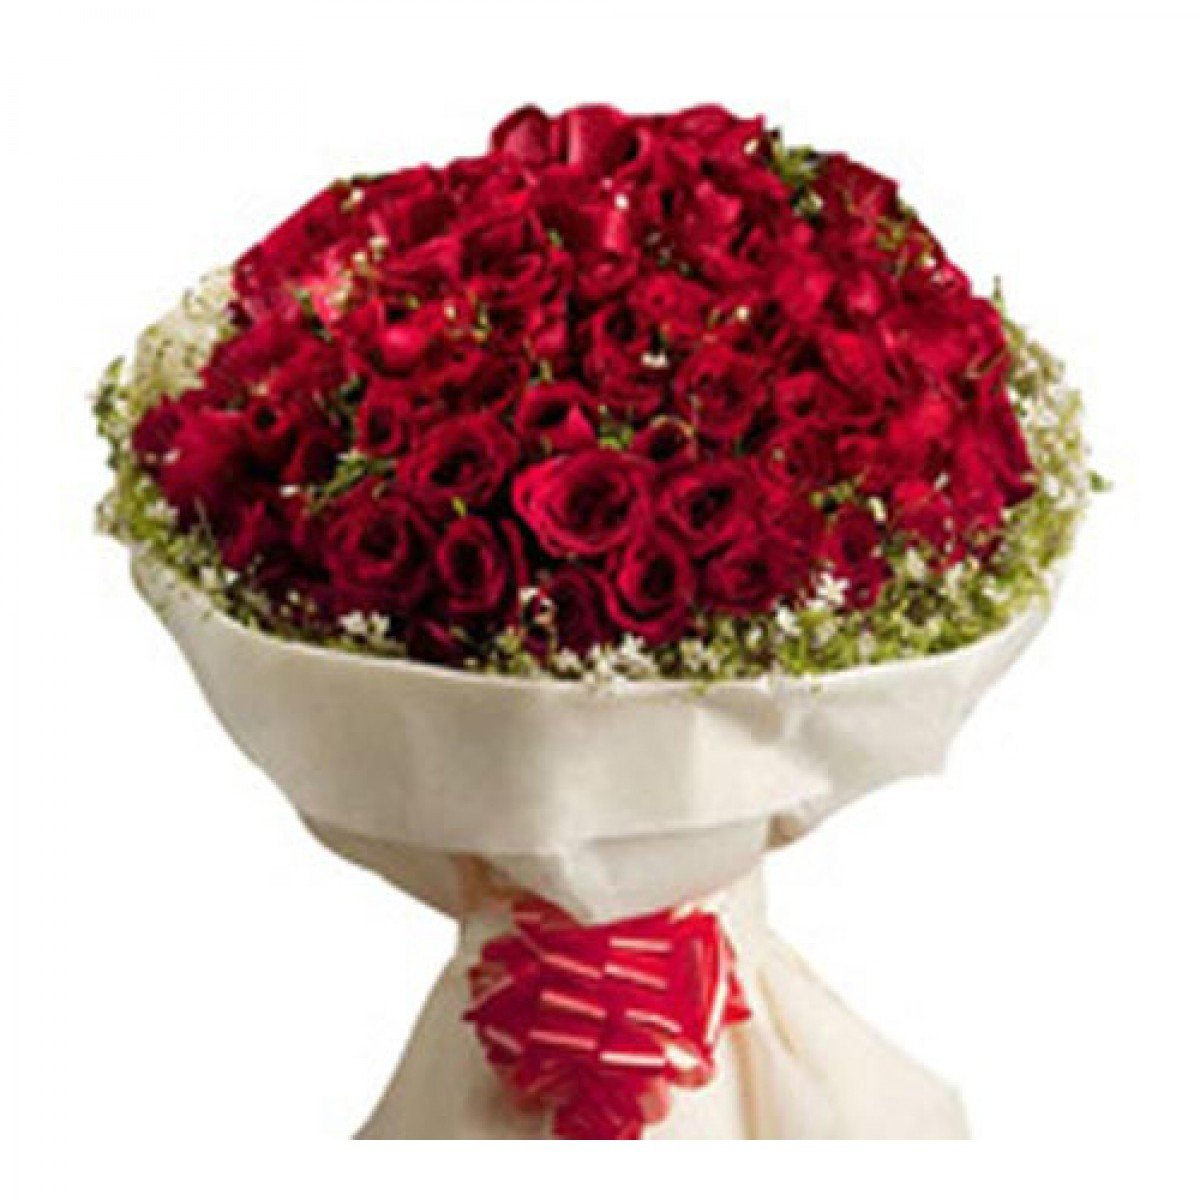 Flowers online free delivery sydney same day flower delivery by httpkeralagiftshopmediacatalogproductcache1image120012009df78eab33525d08d6e5fb8d27136e95rered rose bouquet gifts flowers online izmirmasajfo